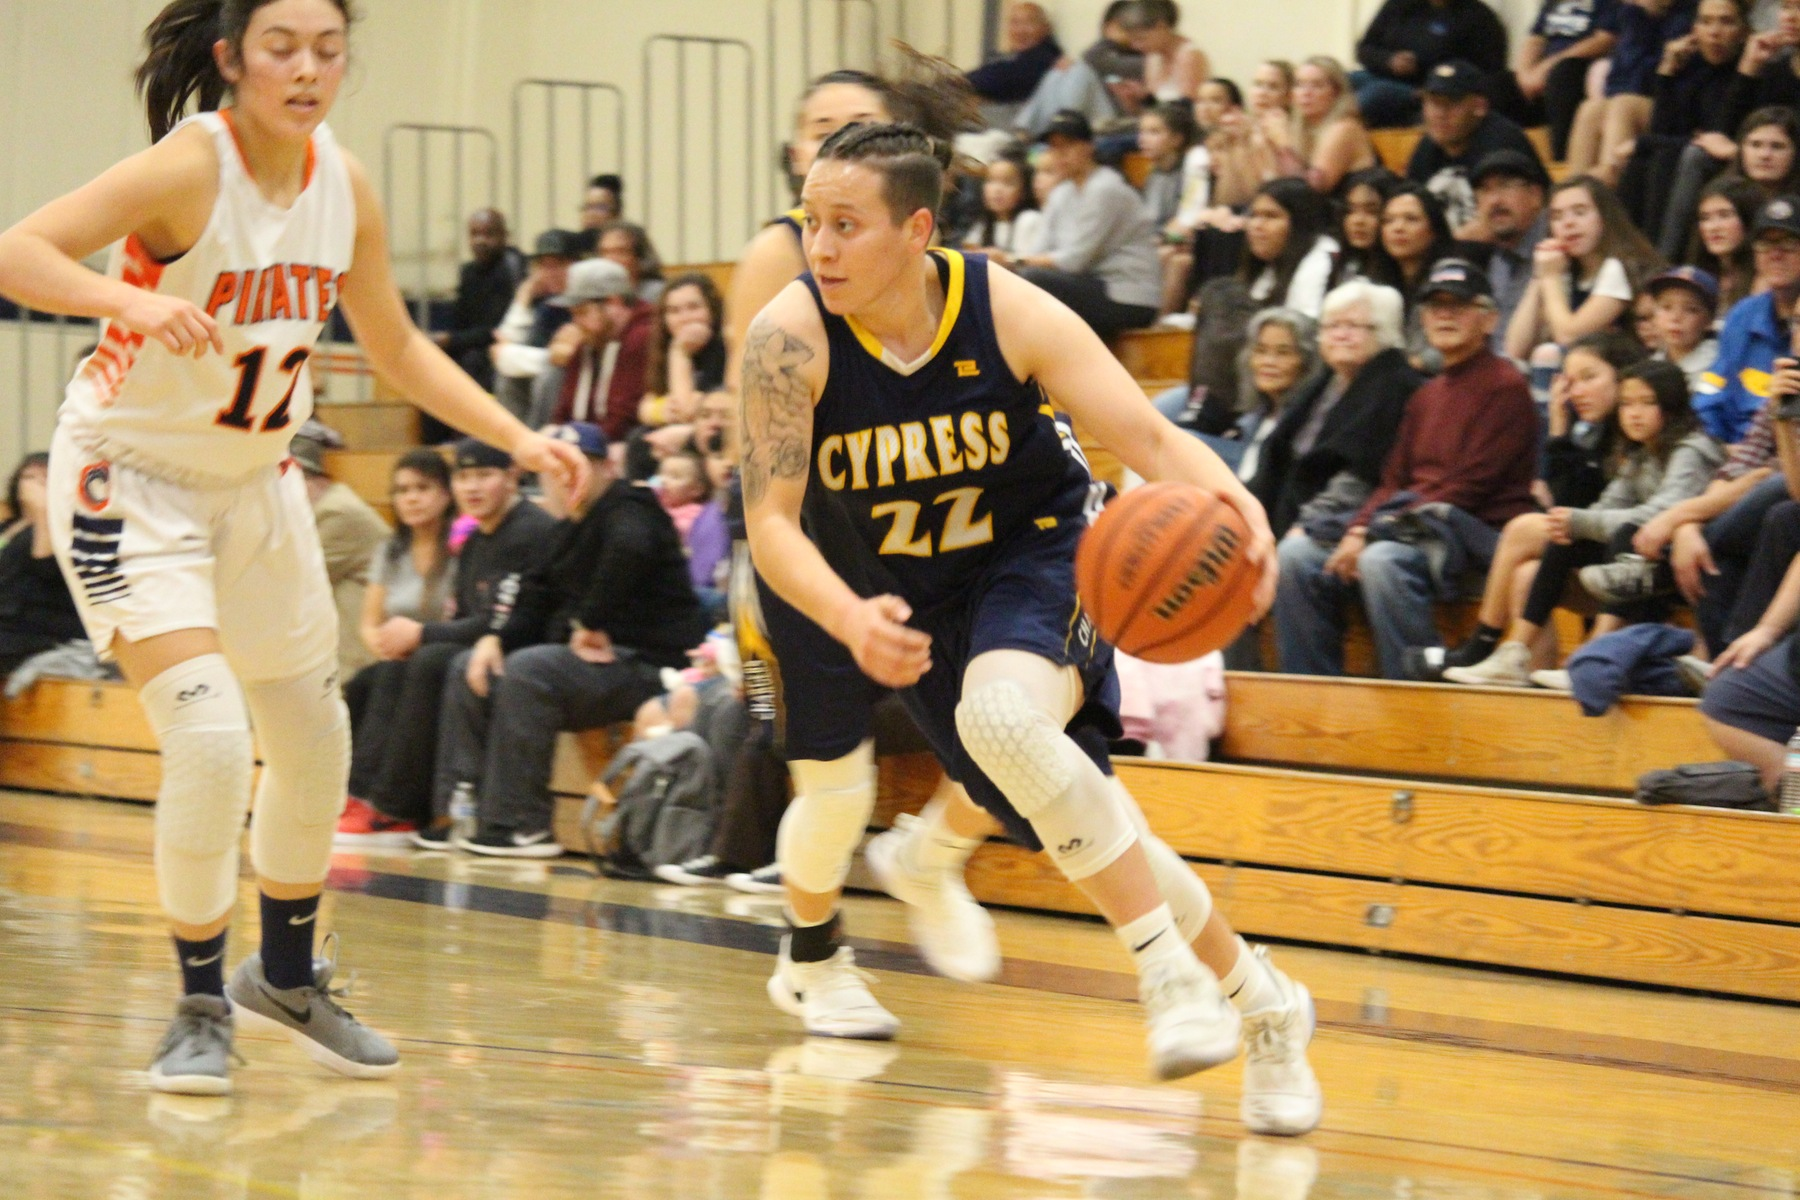 Lady Chargers Cruise Past Pirates, 72-51